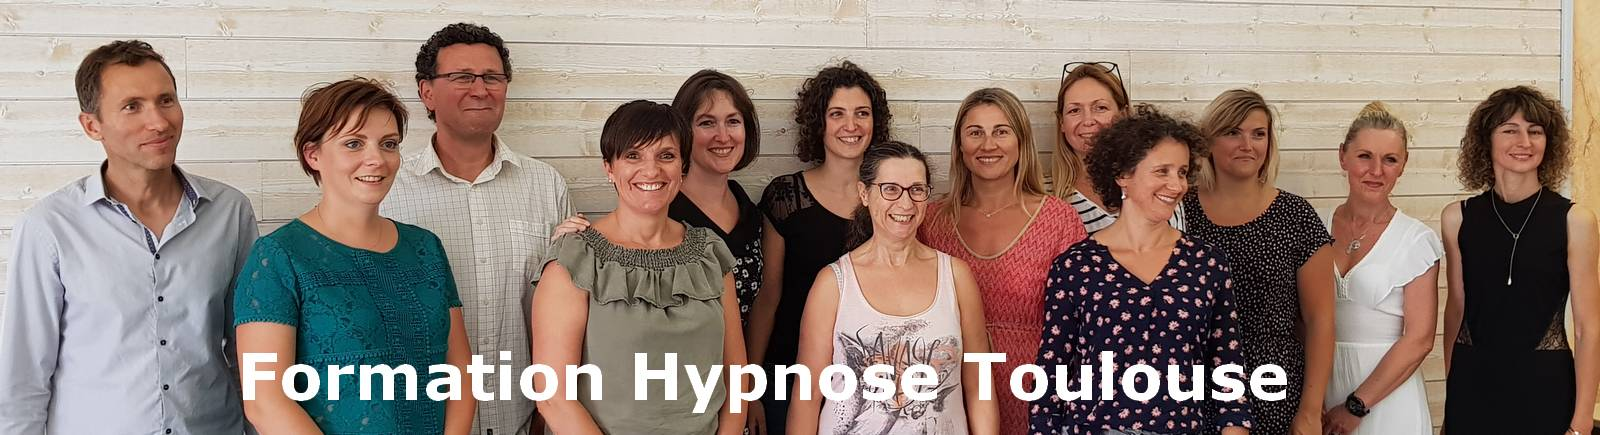 formation hypnose toulouse hansen institute